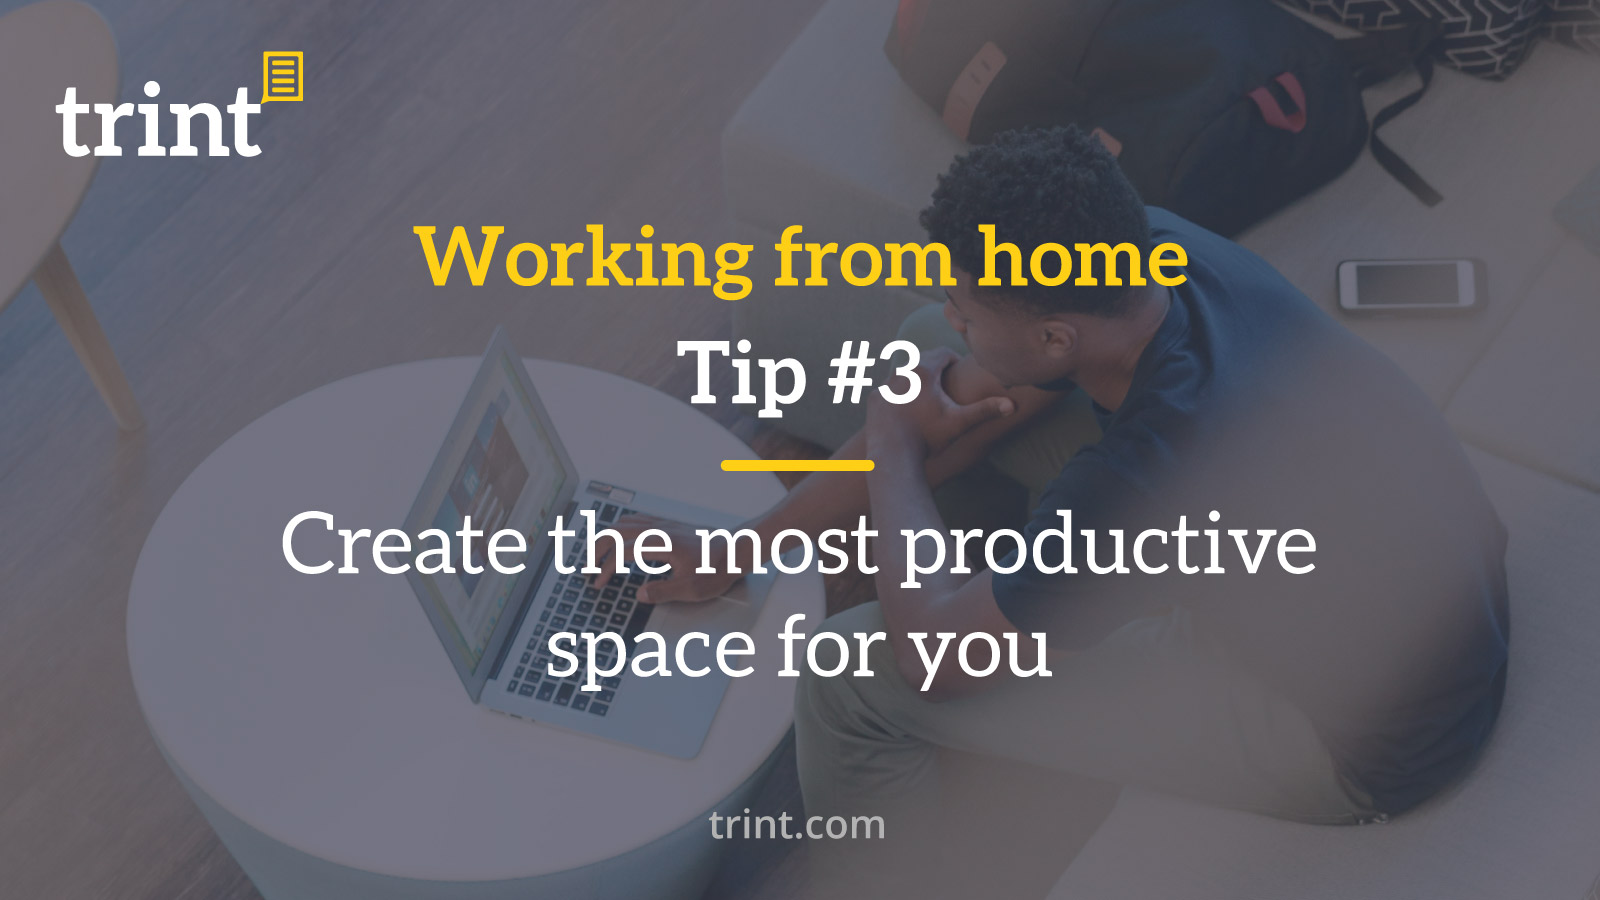 Trint WFH Tip 3 Create the most productive space for you